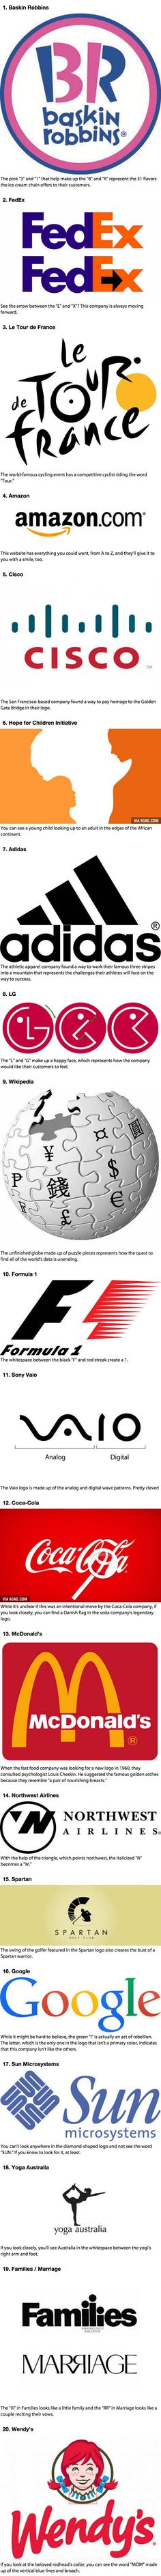 Promotional logos with hidden meanings